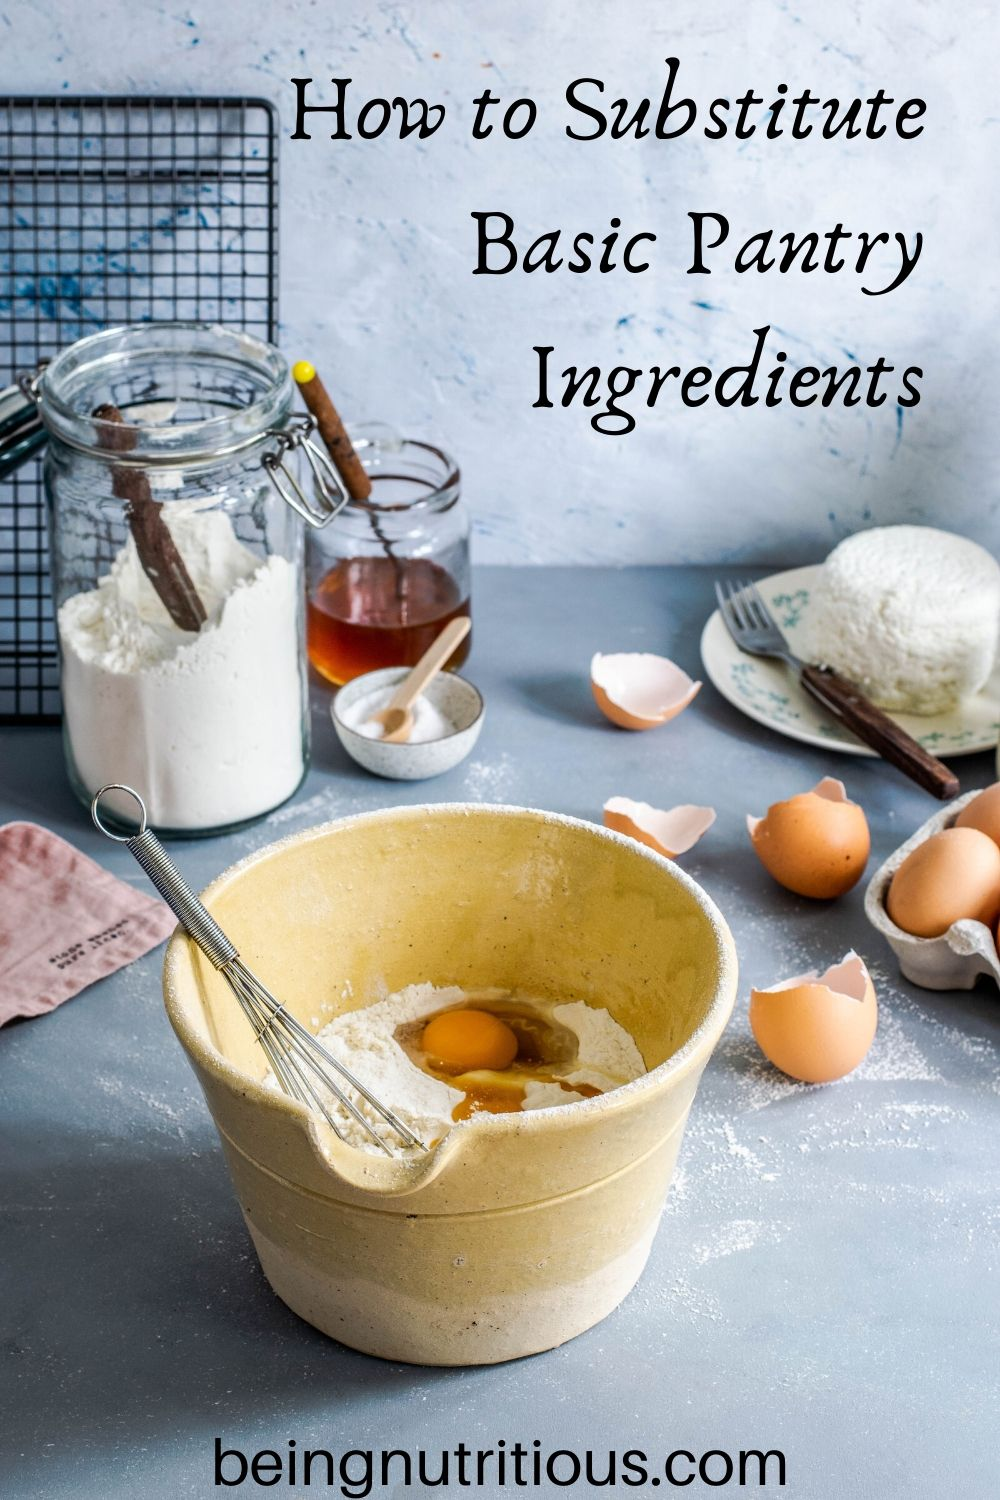 Table with baking ingredients on it, and a bowl with flour and eggs in it.